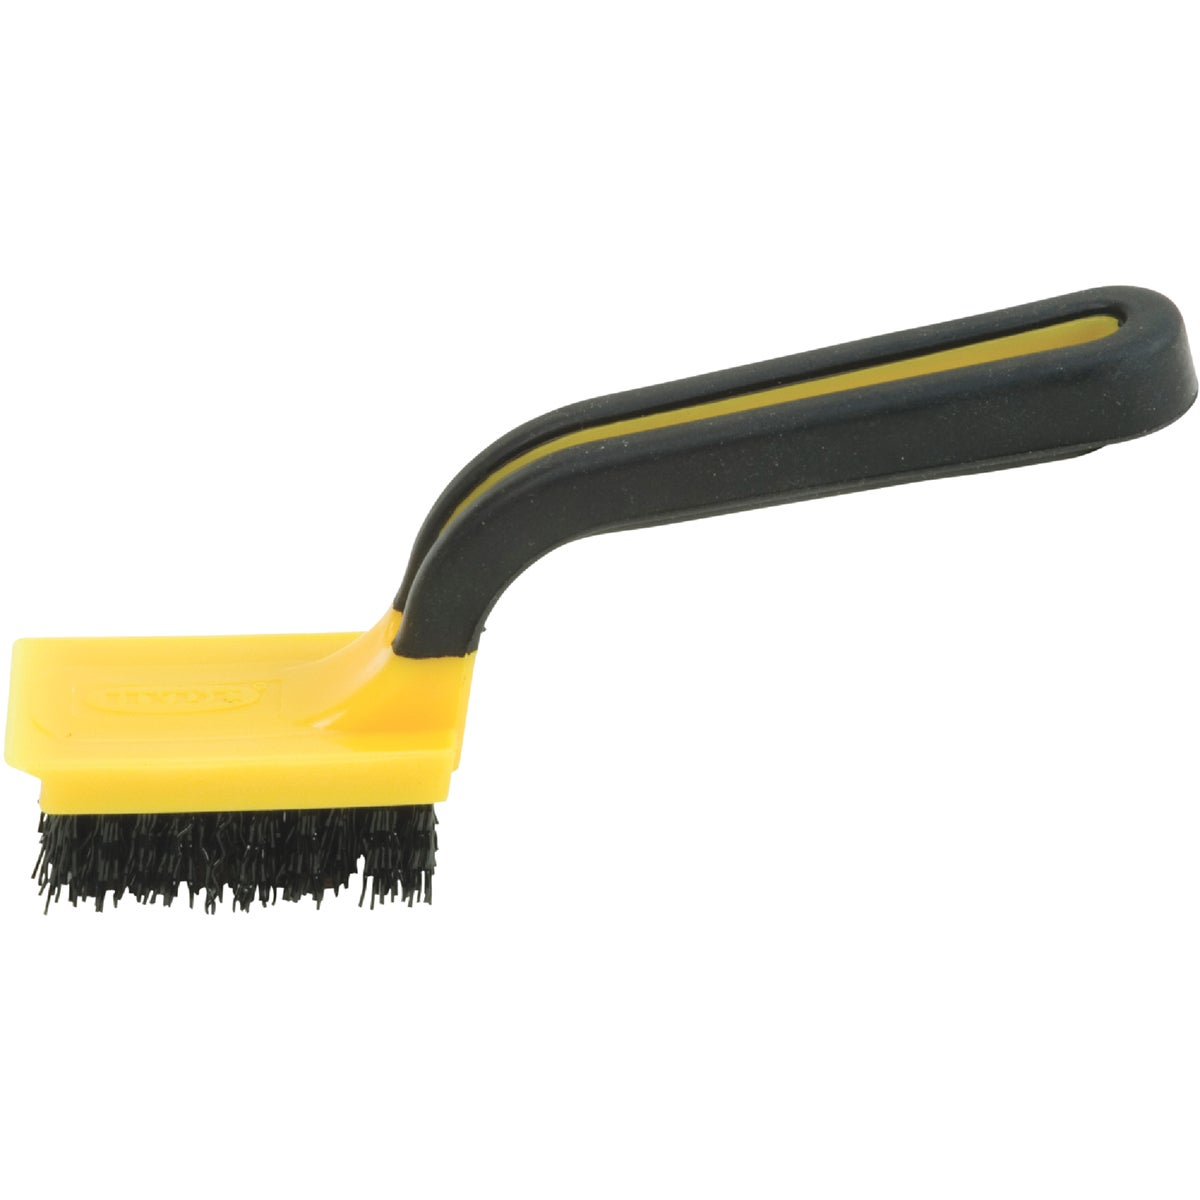 Hyde Mfg. NYLON STRIPPER BRUSH 46804